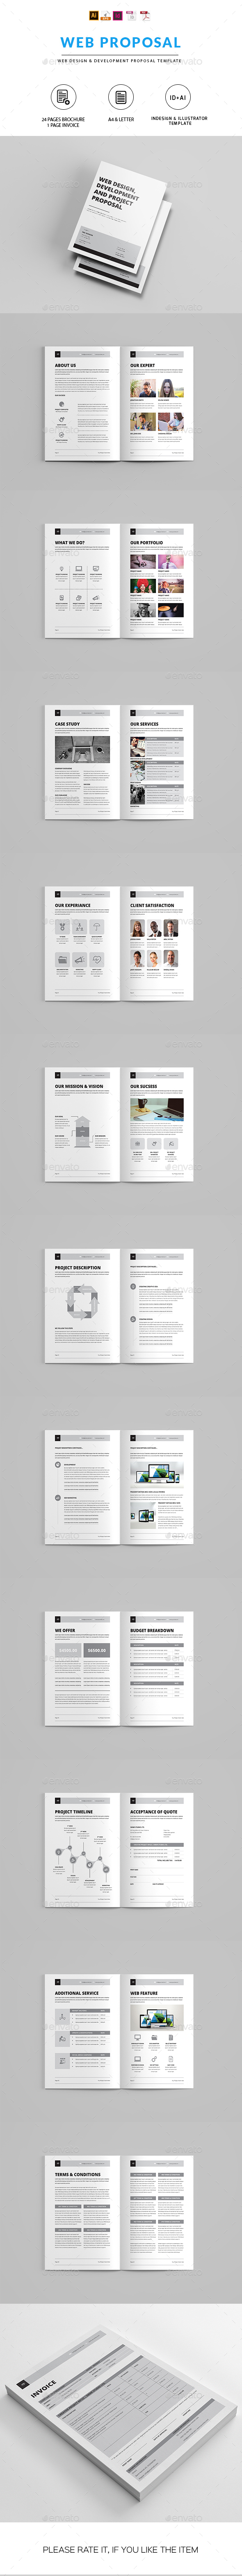 Minimal Proposal Template - Proposals & Invoices Stationery